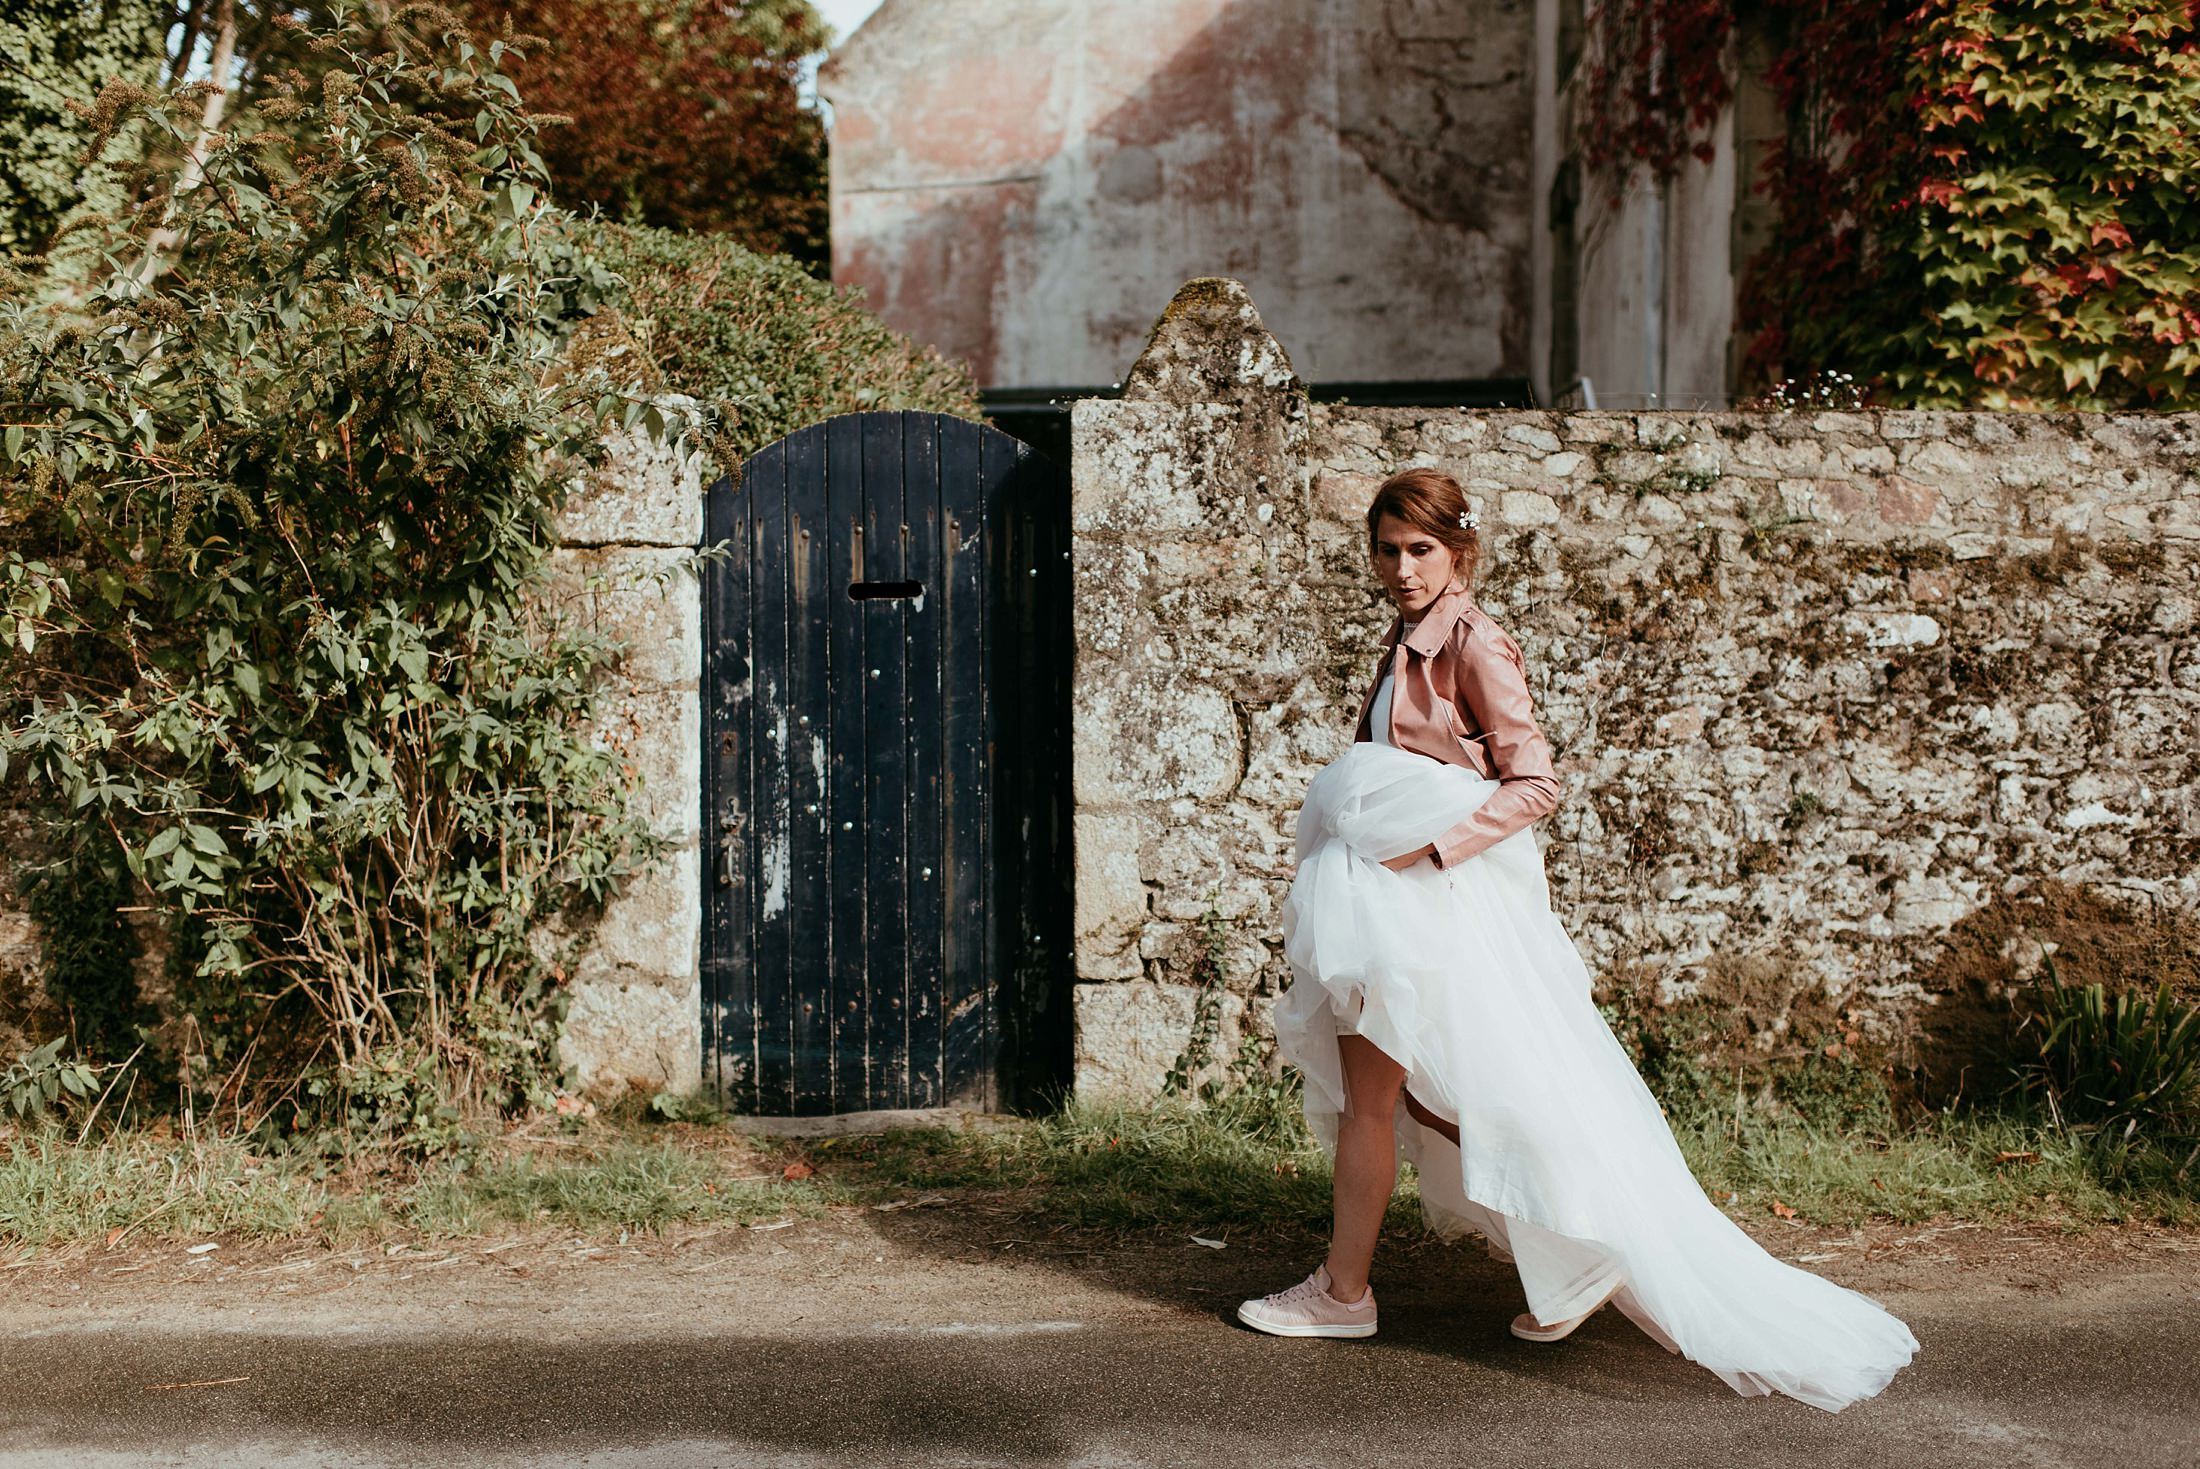 Mariage-storytelling-IleauxMoines-charlesseguy14